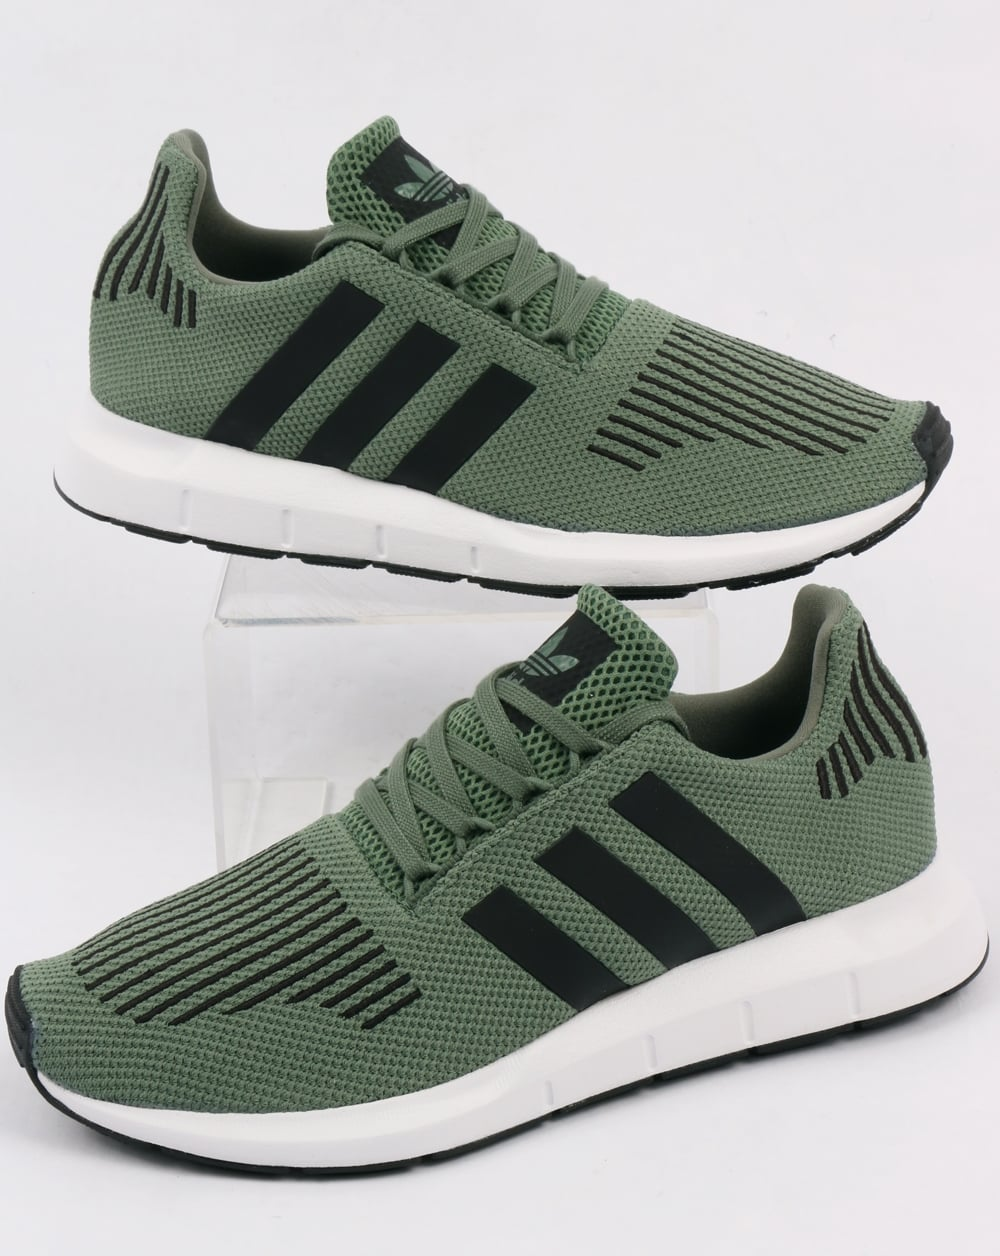 adidas swift run trainers trace green black runners prime knit shoes. Black Bedroom Furniture Sets. Home Design Ideas